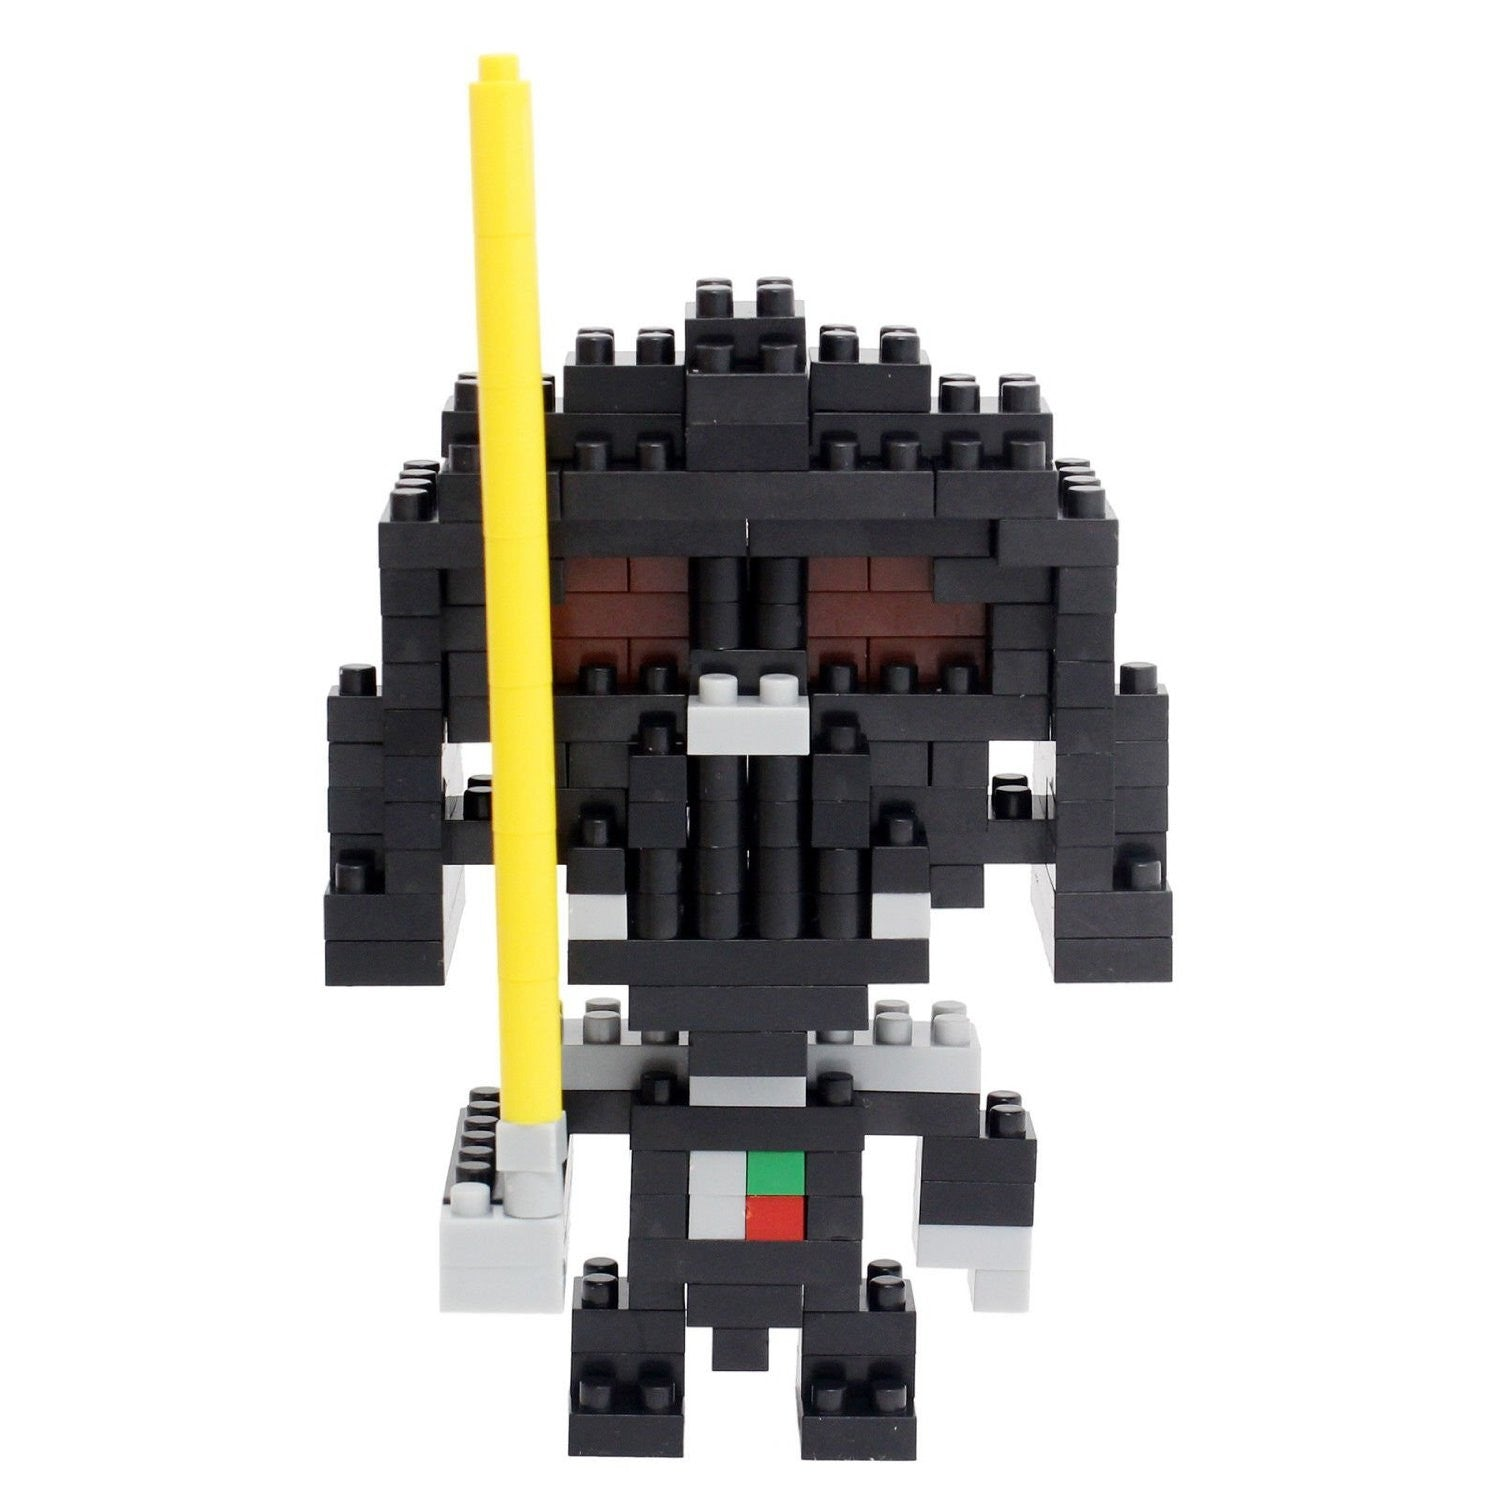 LOZ Diamond Blocks Star Wars Gift Series Nano Block 180 Piece Building Set - Darth Vader